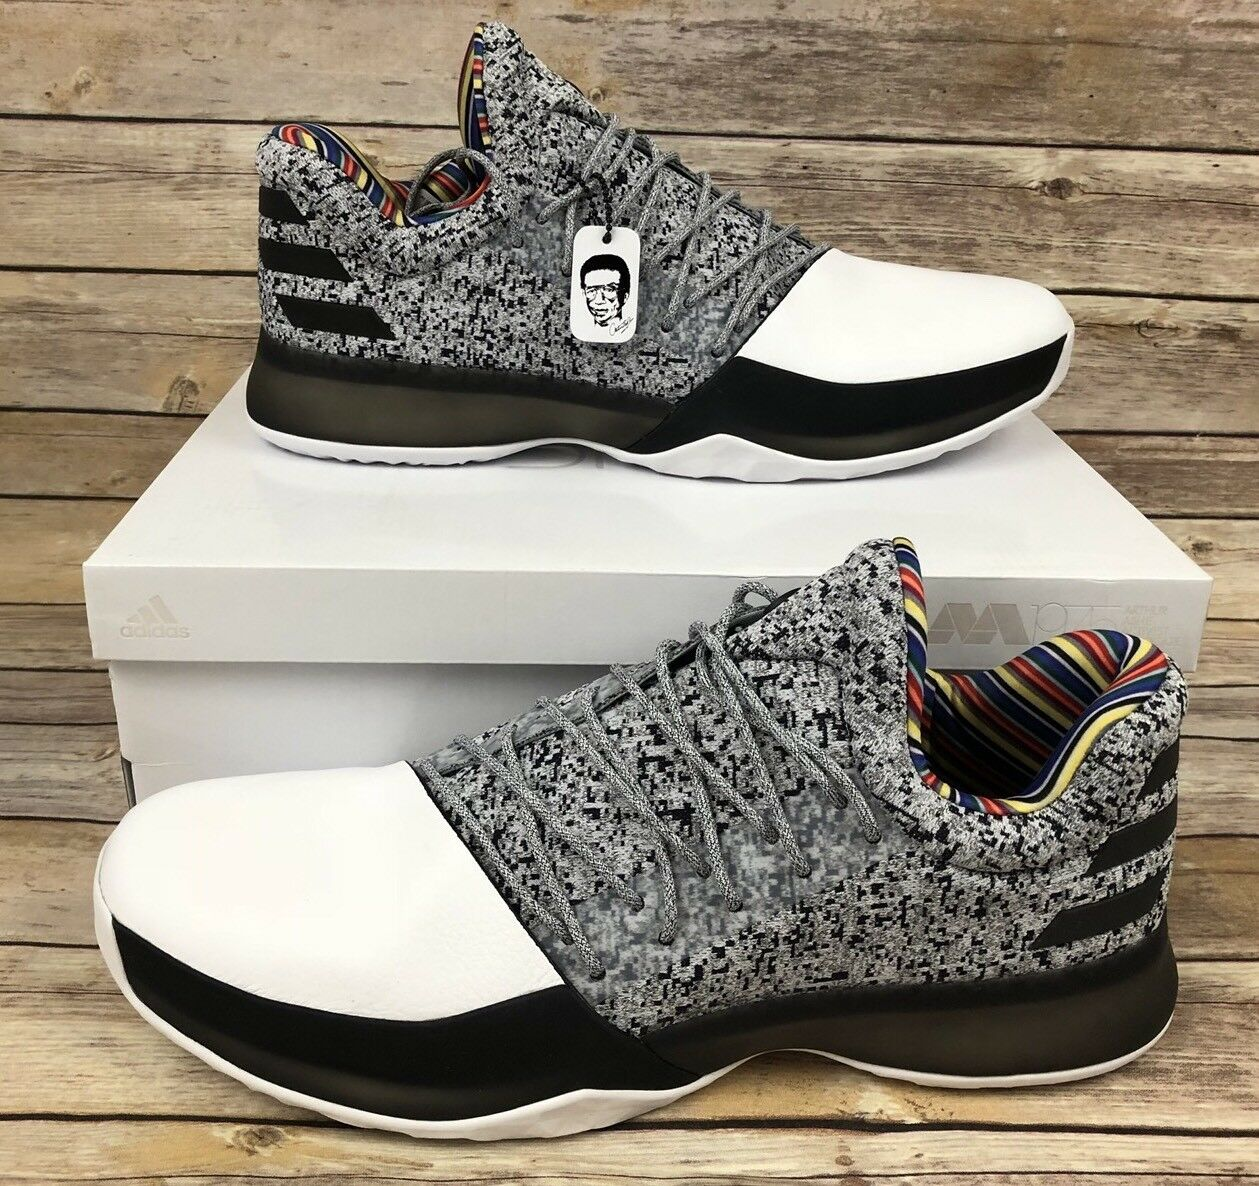 Adidas Harden Vol 1 BHM Arthur Ashe Edition BY3473 Comfortable